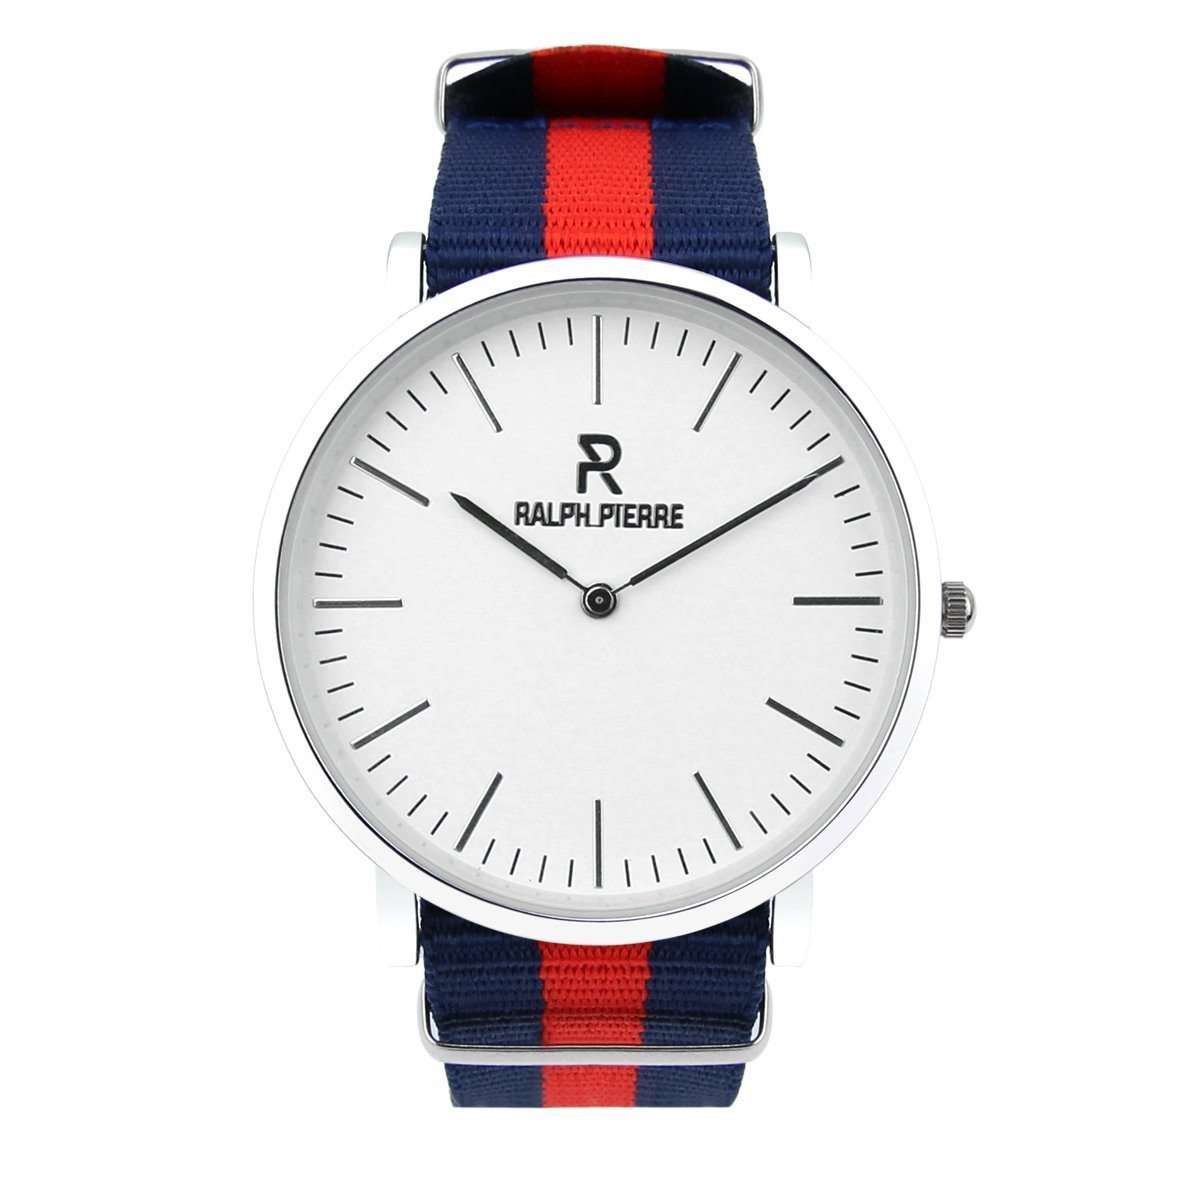 Ralph Pierre Bande Galloway Analog Watch With White Dial and  Red & Blue Strap